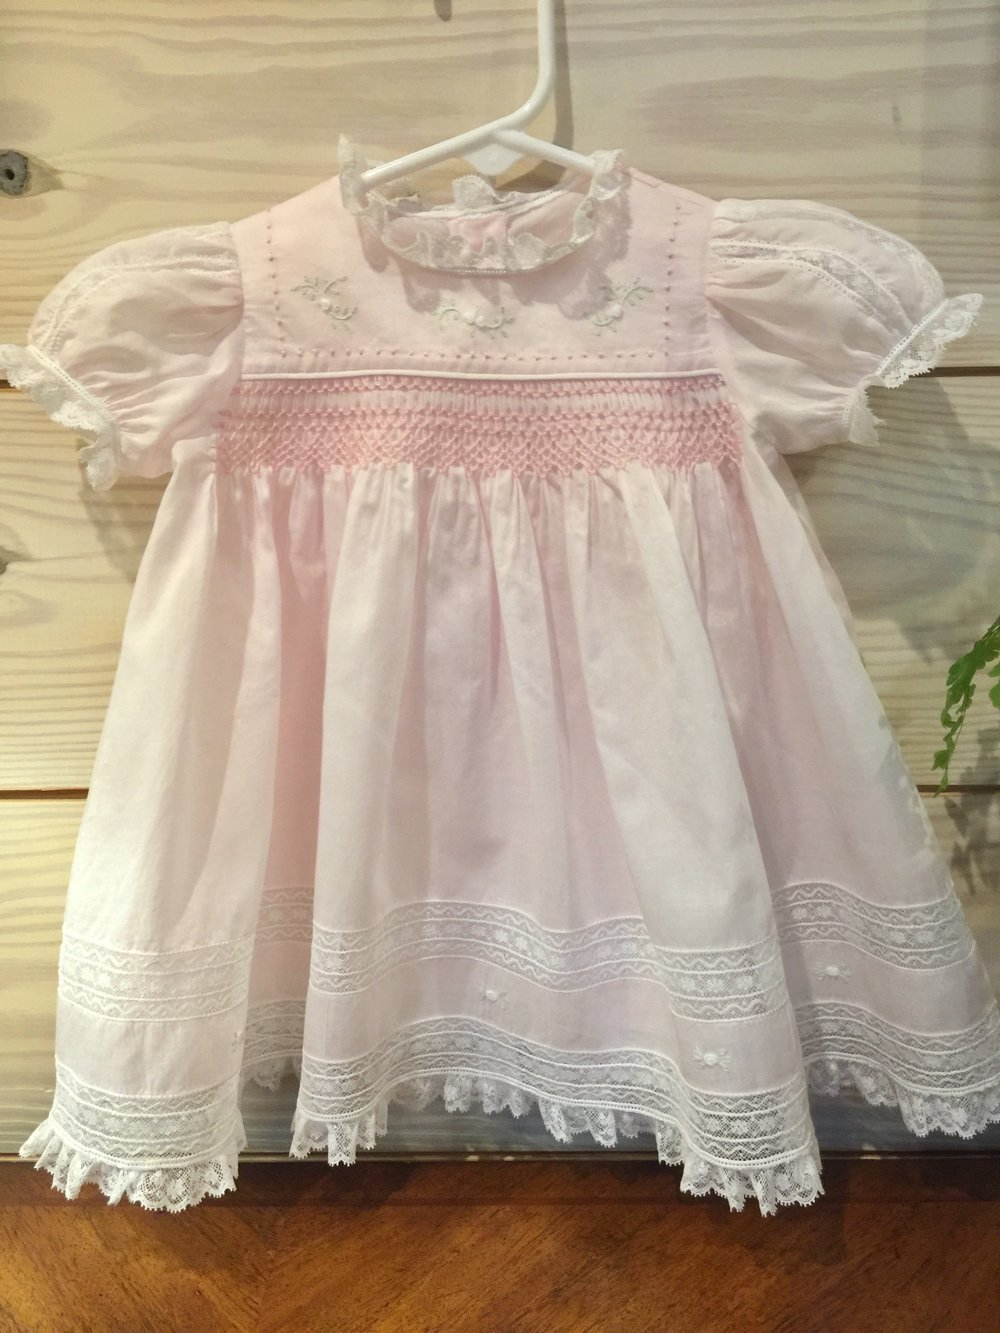 Handmade heirloom baby dress with matching slip and bloomers.  Patty used the finest Swiss batiste, french laces and mother of pearl buttons.  Embroidery and smocking are delicately finished in pink and white.   Handmade sewn and donated by:  Patty McAnally